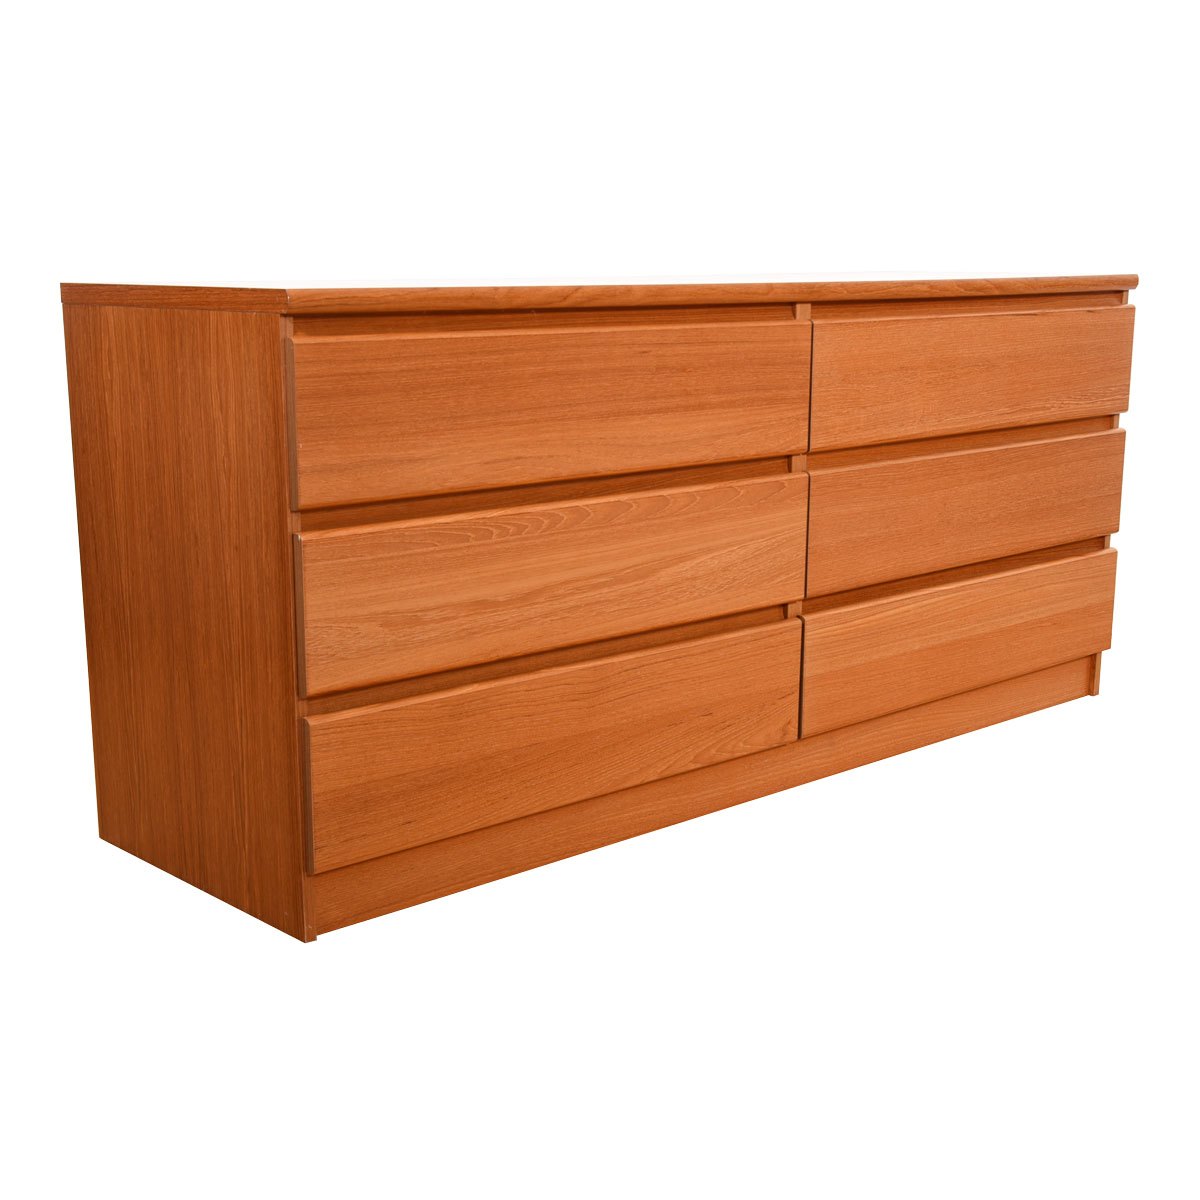 66″ Long MCM Dresser with Six Drawers and Sleek Pulls